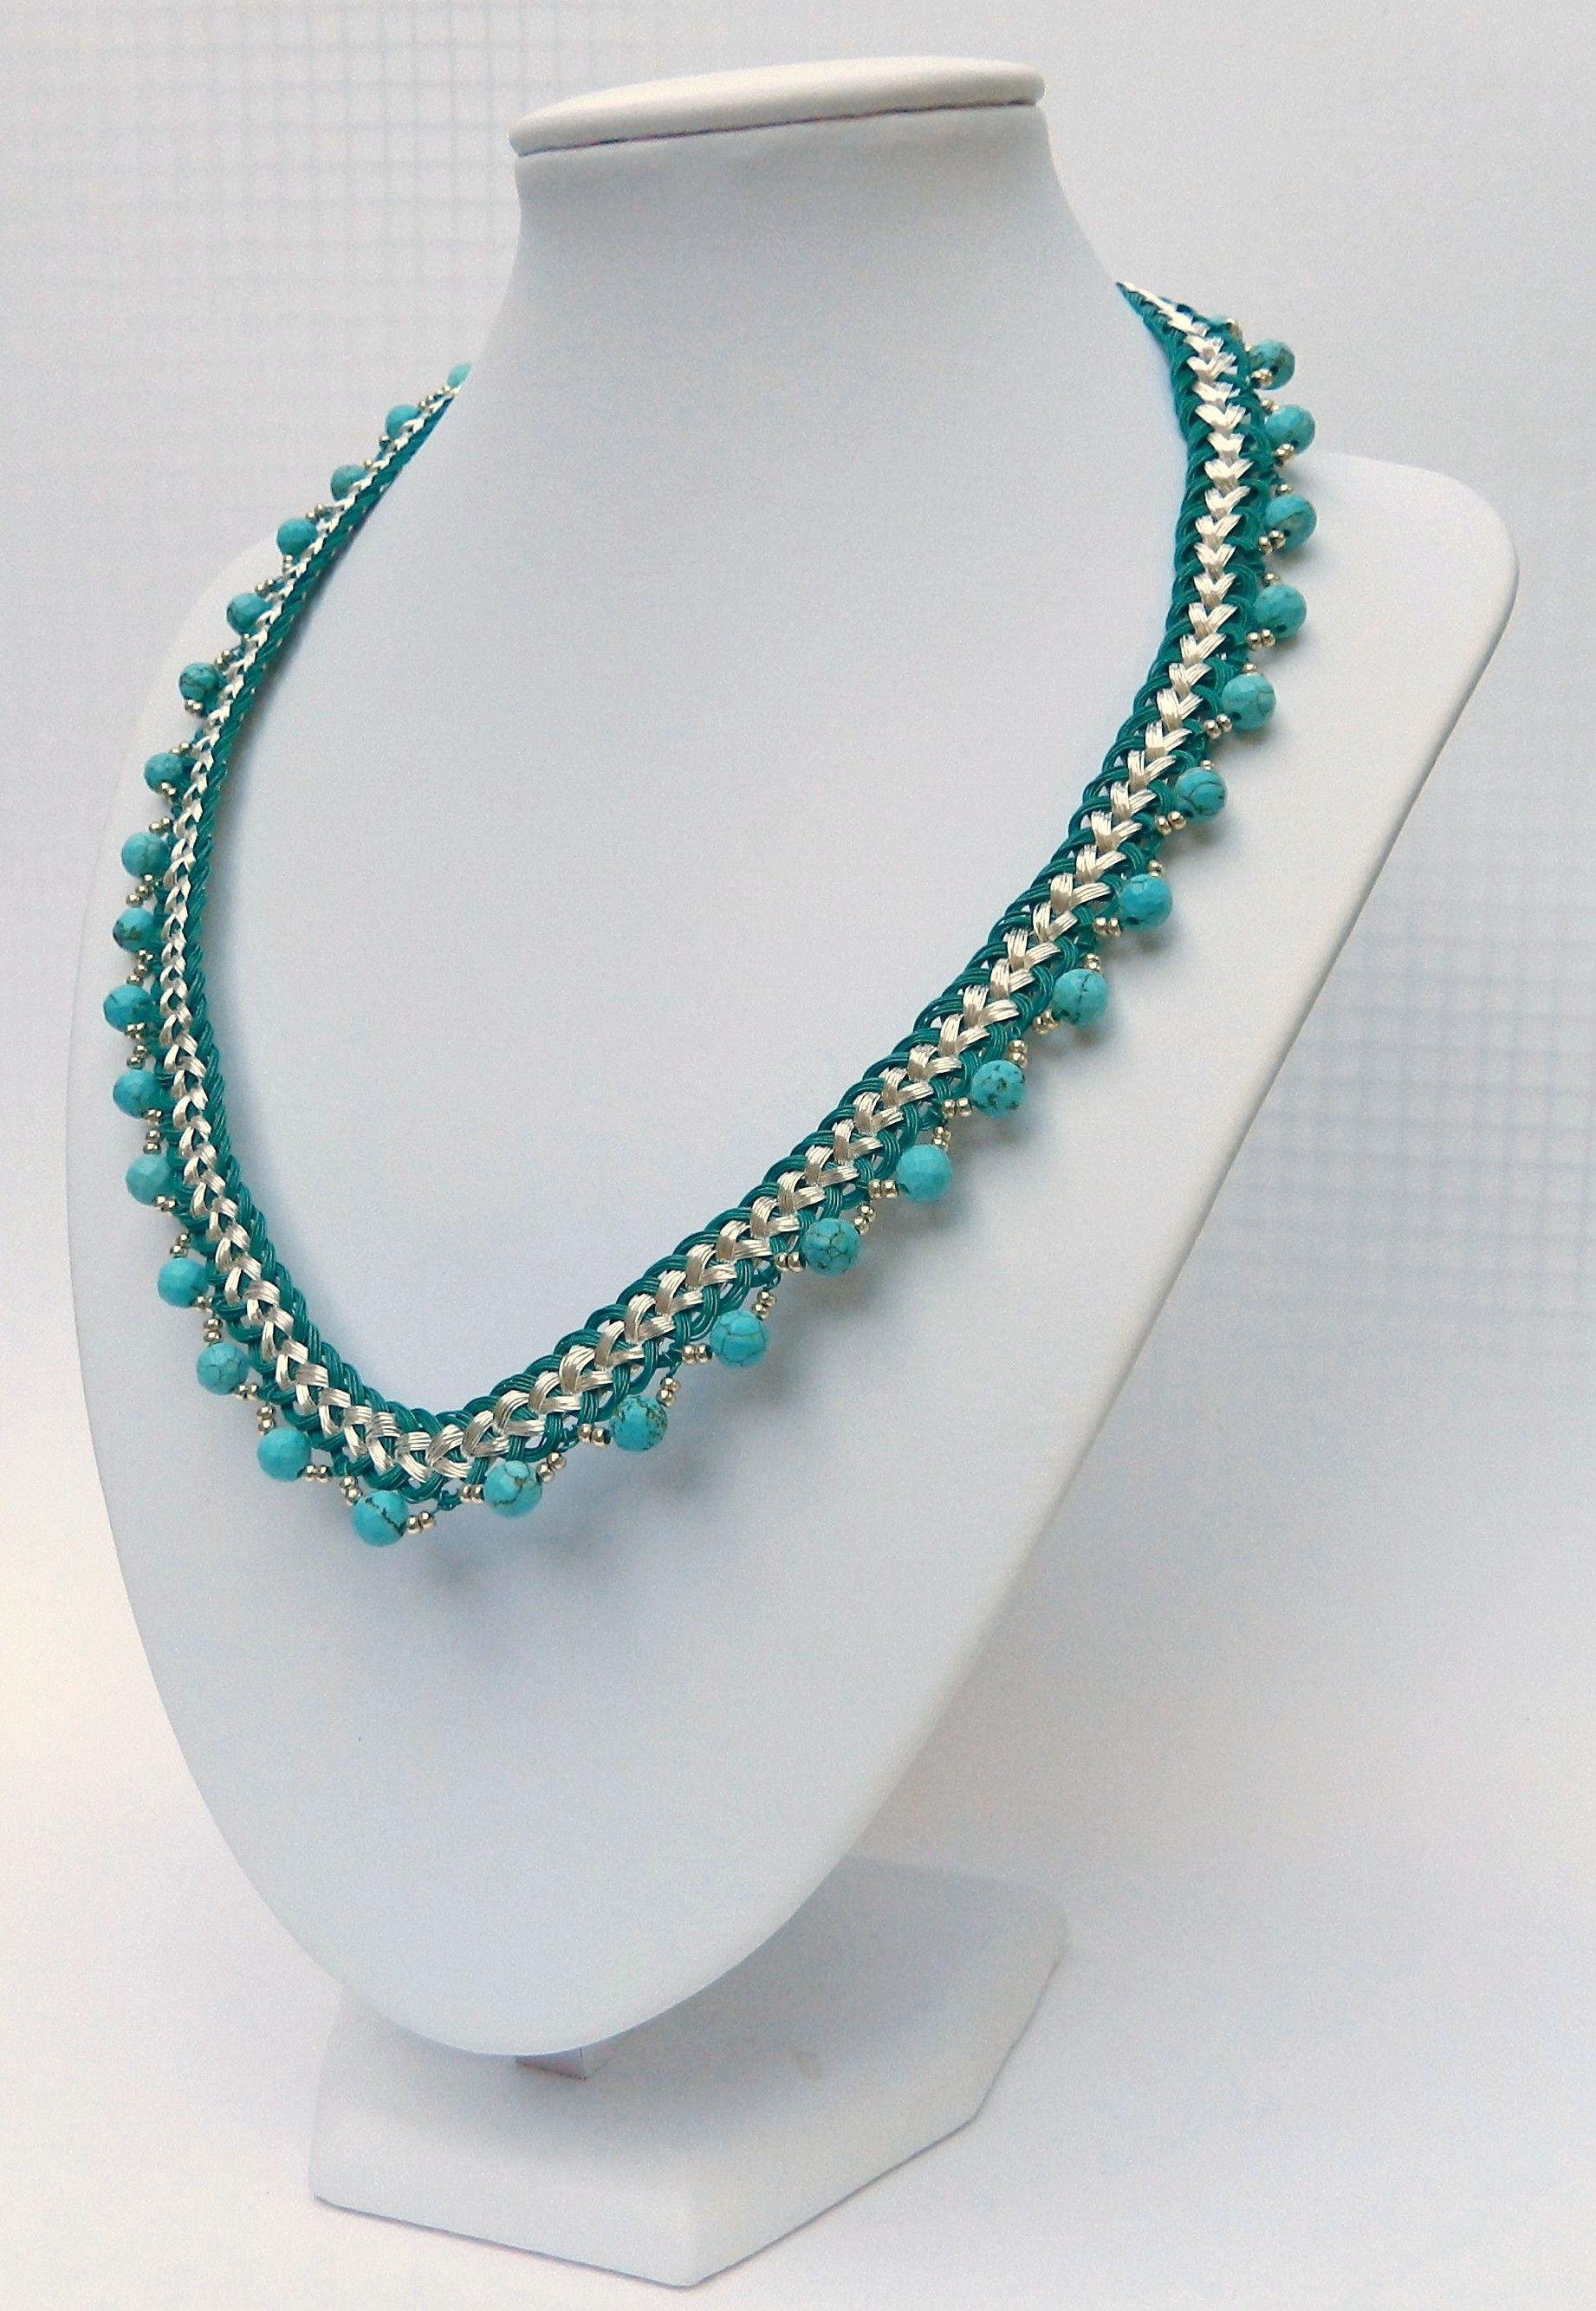 Wire Kumihimo Beaded Collar Tutorials Beads And Patterns